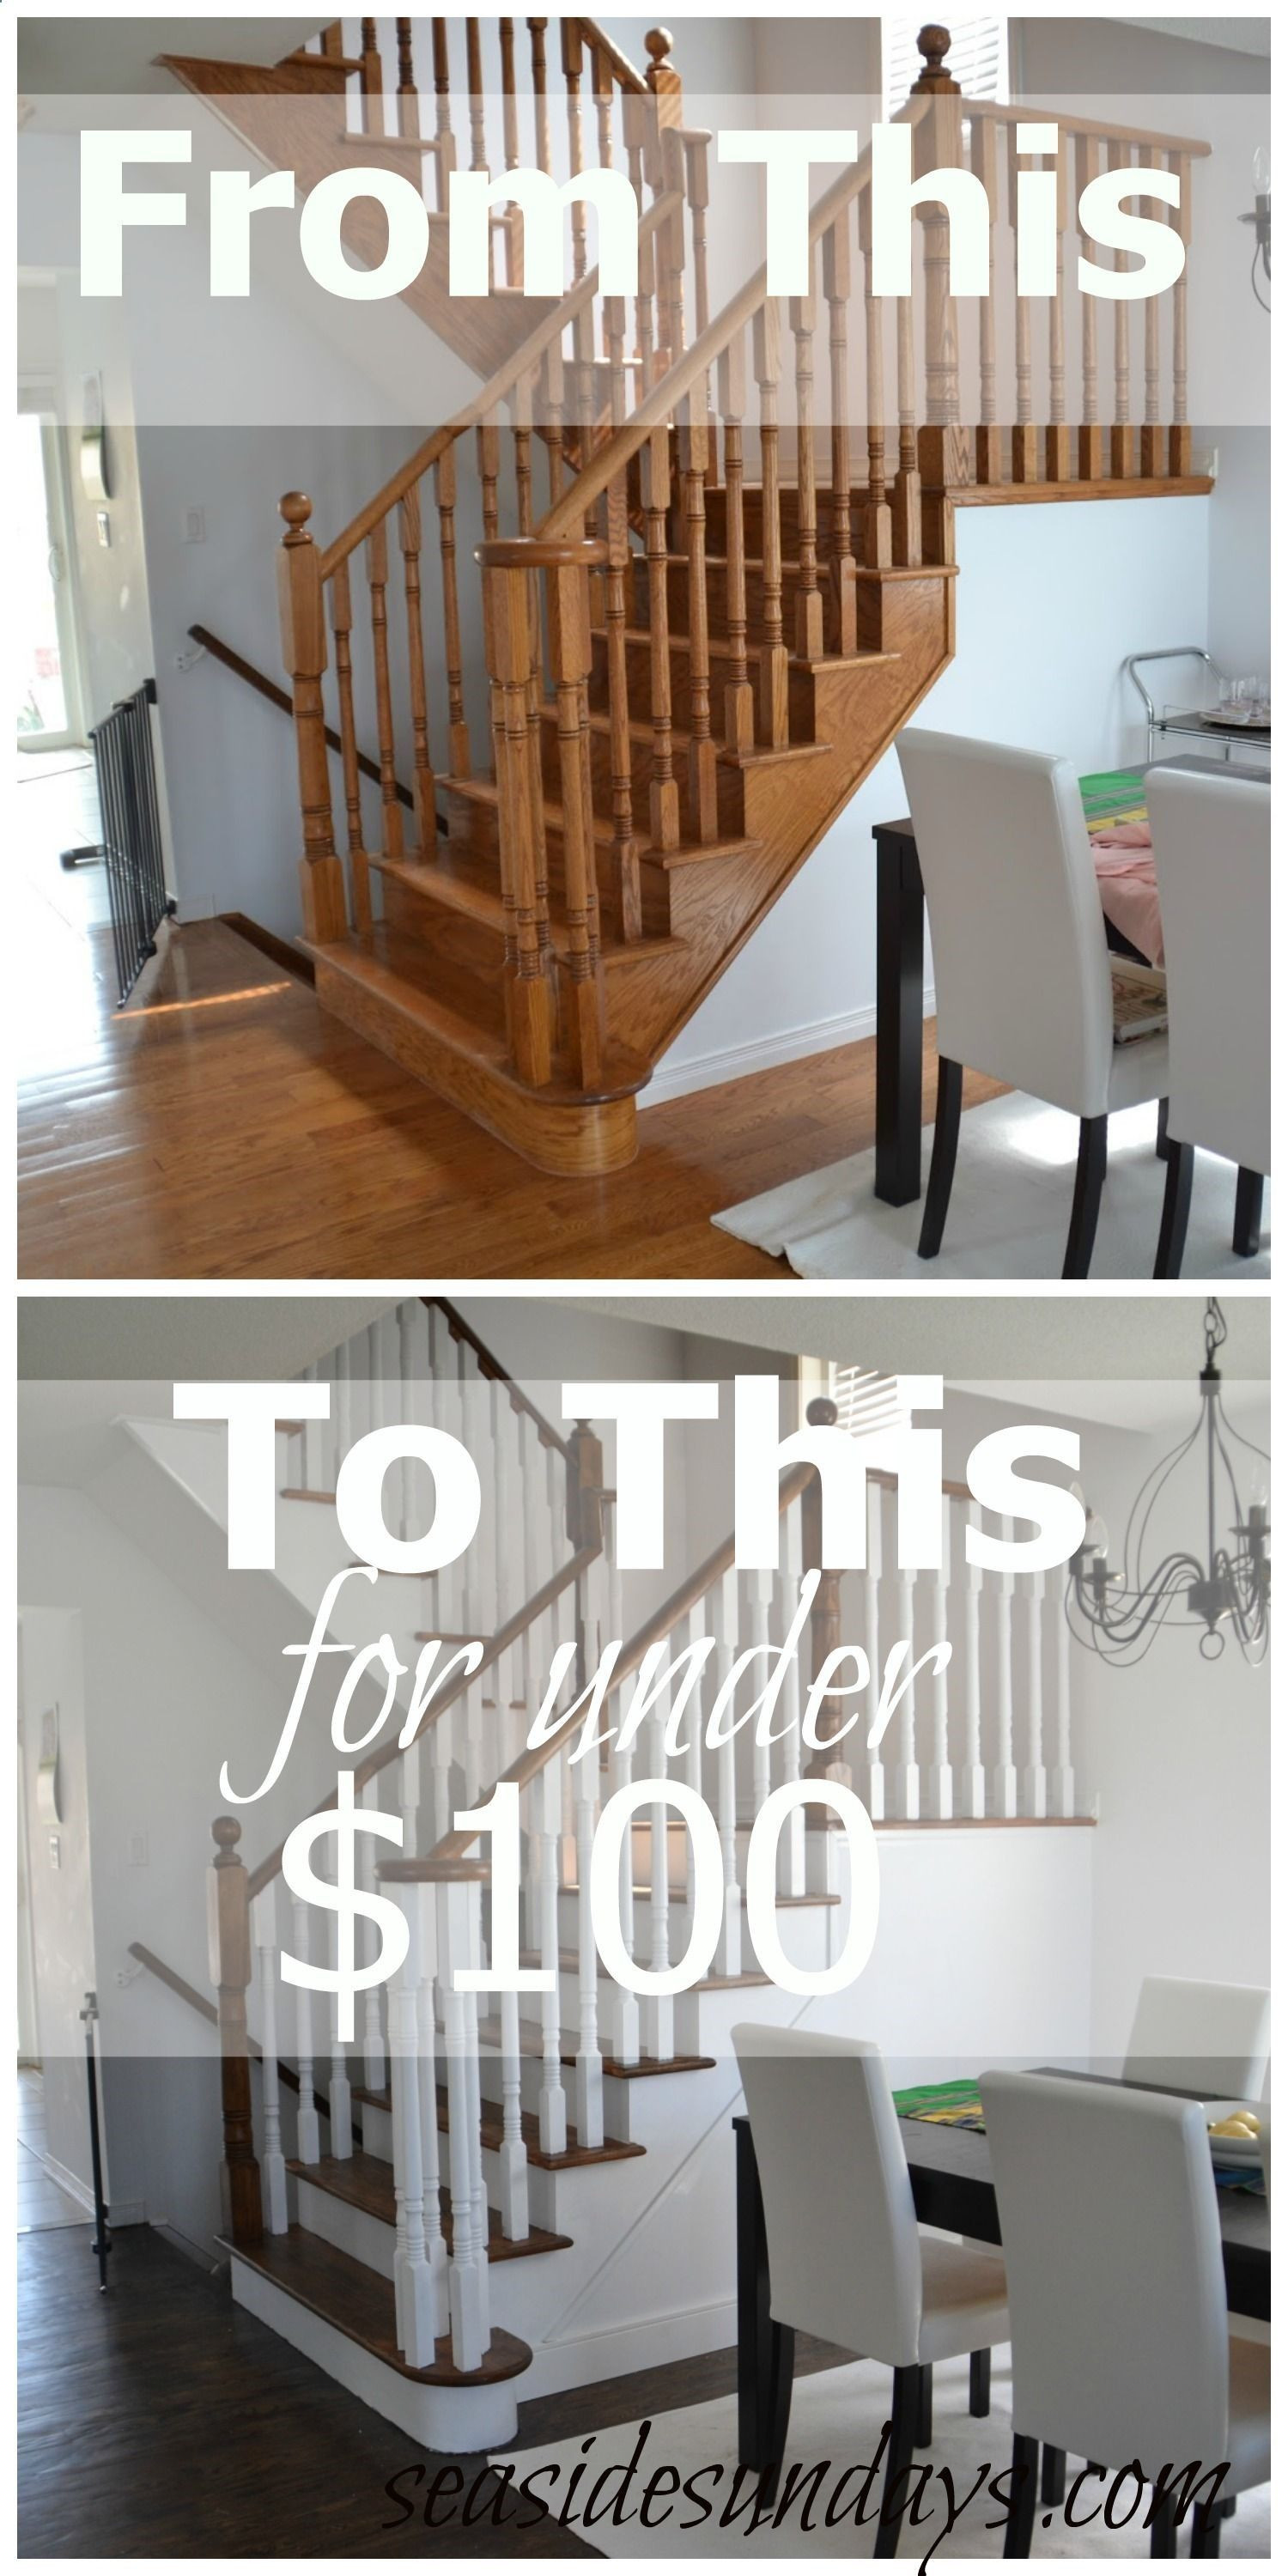 hardwood floor sanding and refinishing prices of wood profit woodworking how to refinish hardwood floors diy for wood profit woodworking how to refinish hardwood floors diy refinish and stain stairs